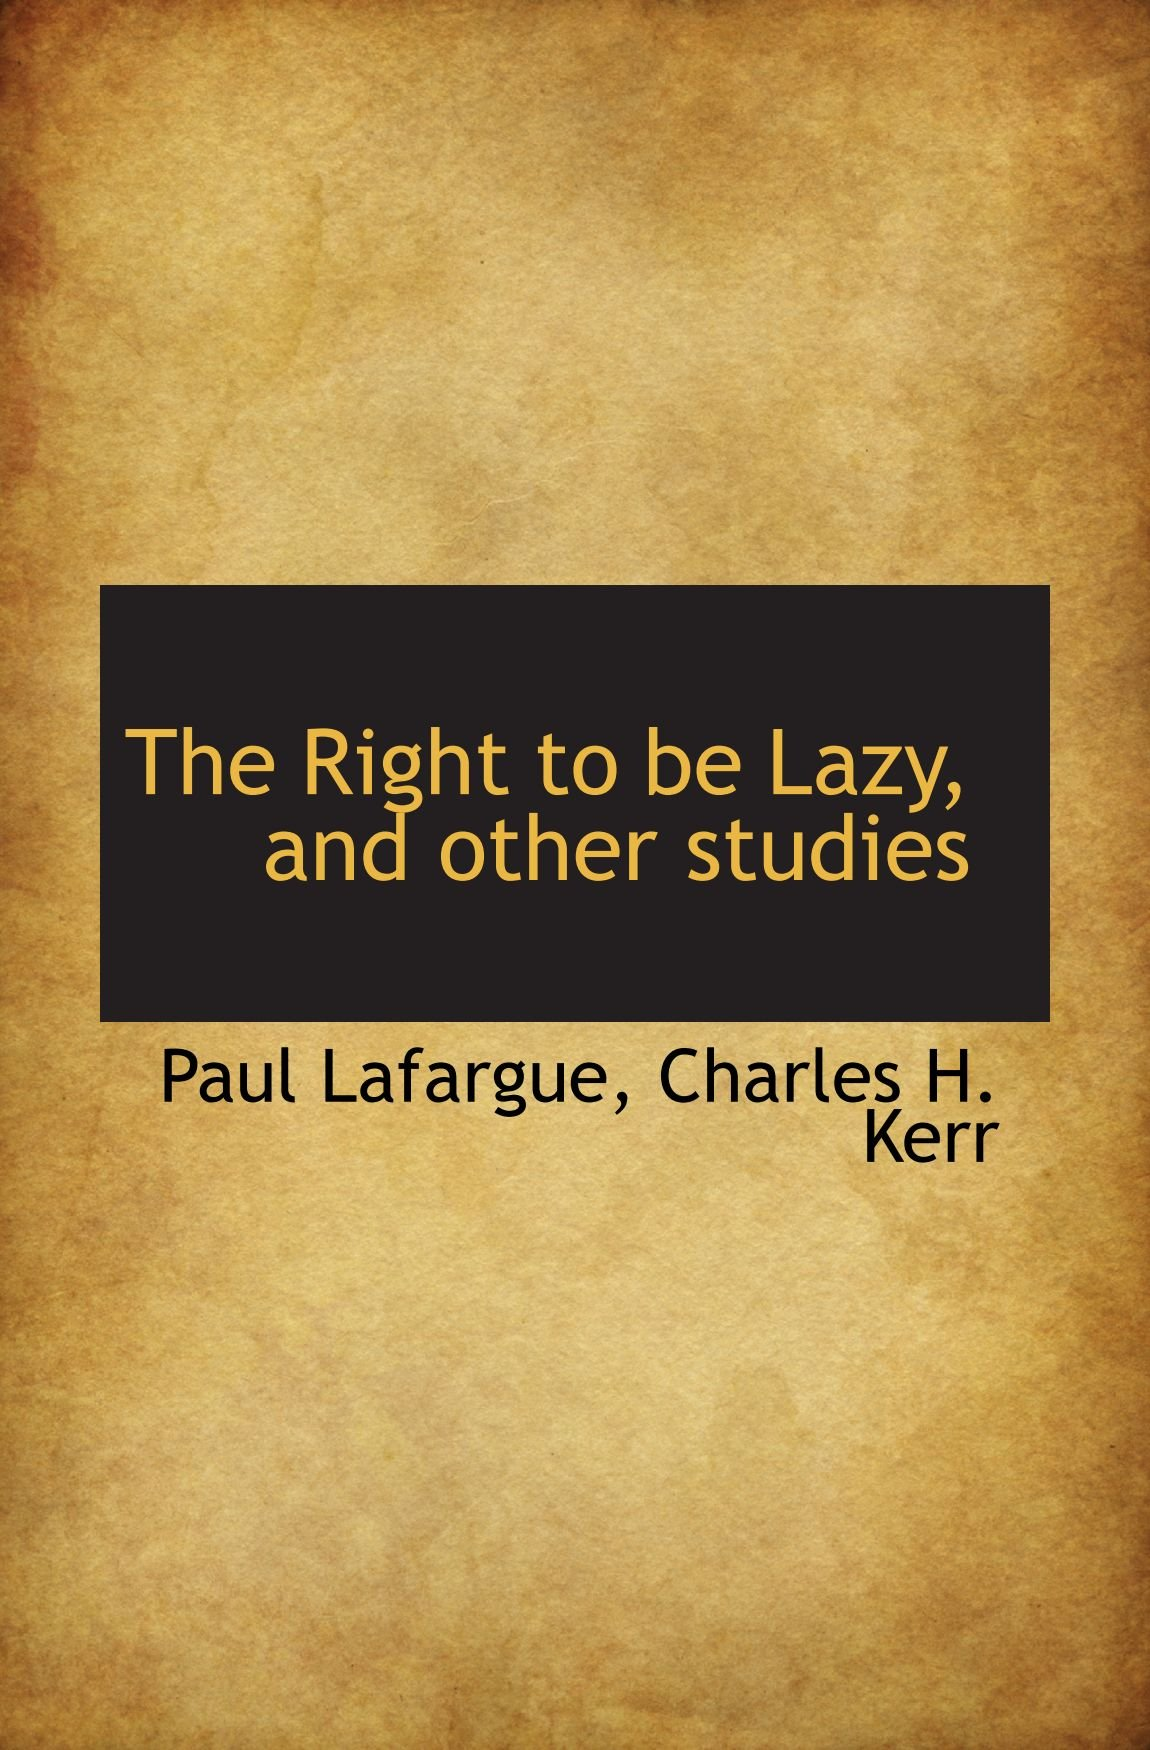 the right to be lazy lafargue paul kerr charles